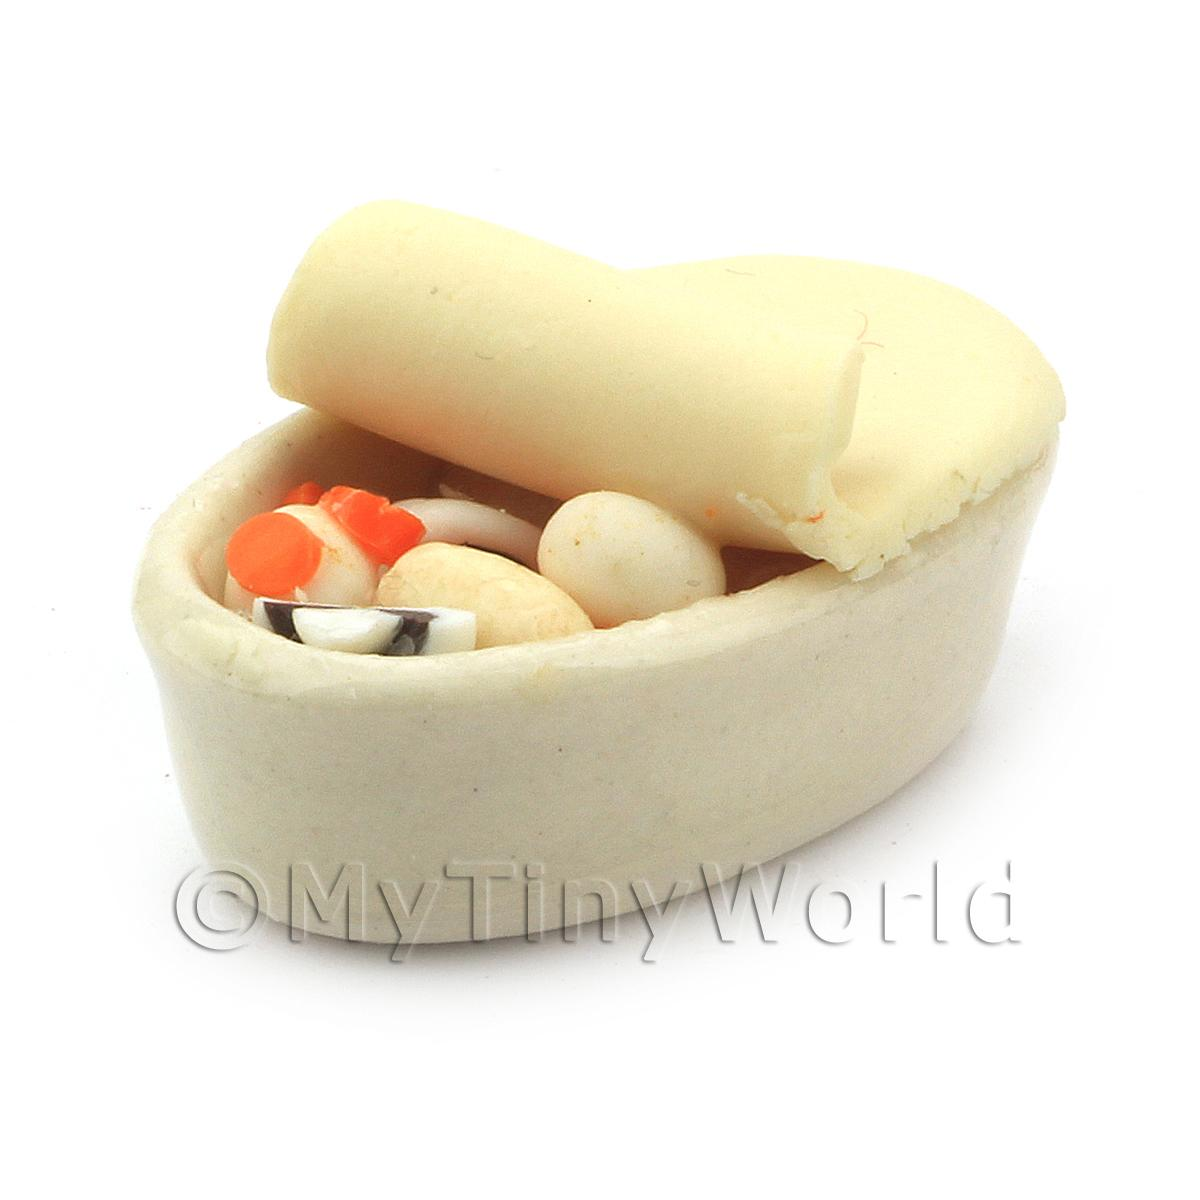 Dolls House Miniature Vegetable Casserole In A Ceramic Pie Dish